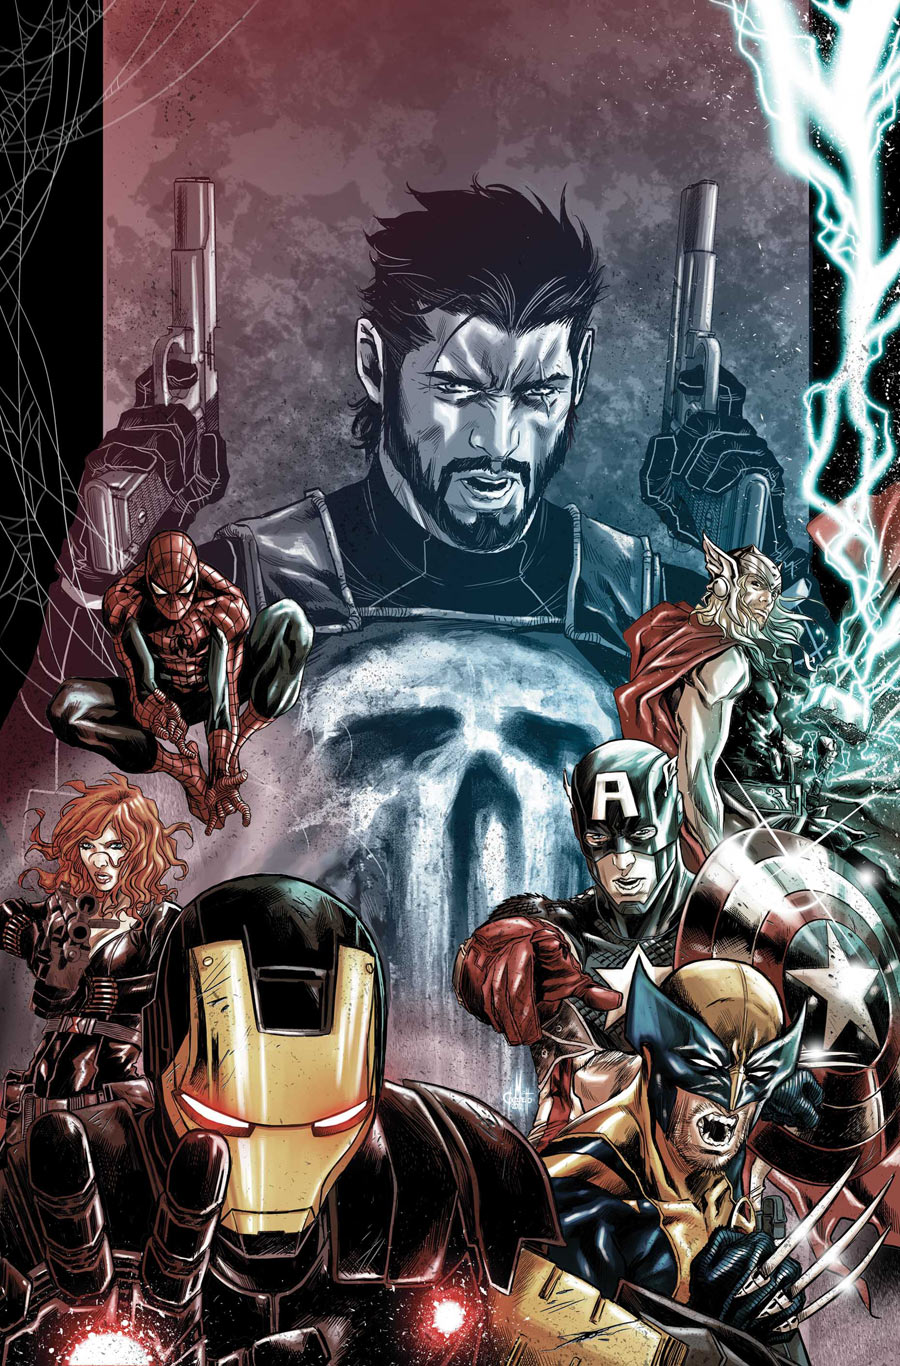 http://images.wikia.com/marveldatabase/images/5/58/Punisher_War_Zone_Vol_3_2_Textless.jpg